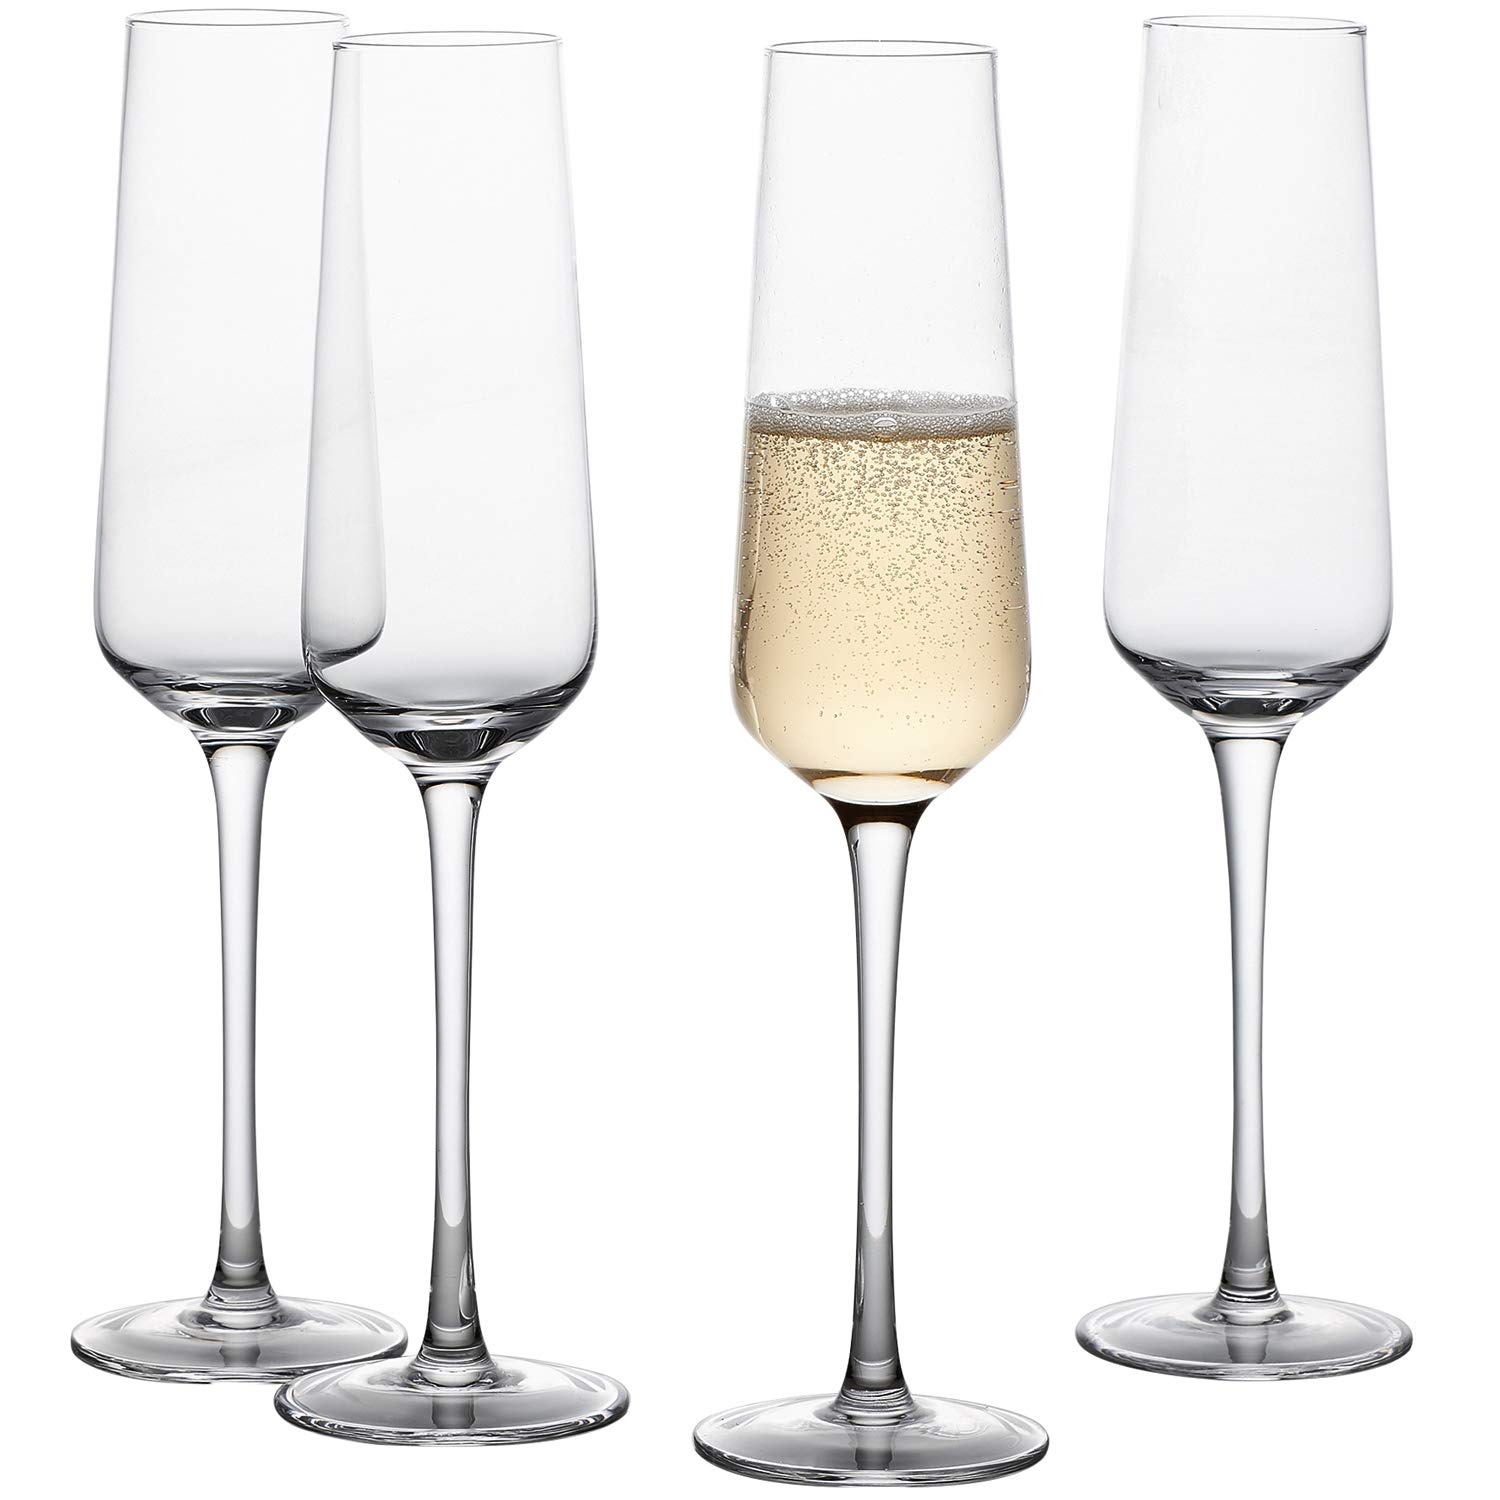 GoodGlassware Champagne Flutes (Set Of 4) 8.5 oz - Crystal Clear Clarity, Classic and Seamless Tower Design - Lead Free Glass, Dishwasher Safe, Quality Sparkling Wine Stemware Set by Vintorio (Image #1)